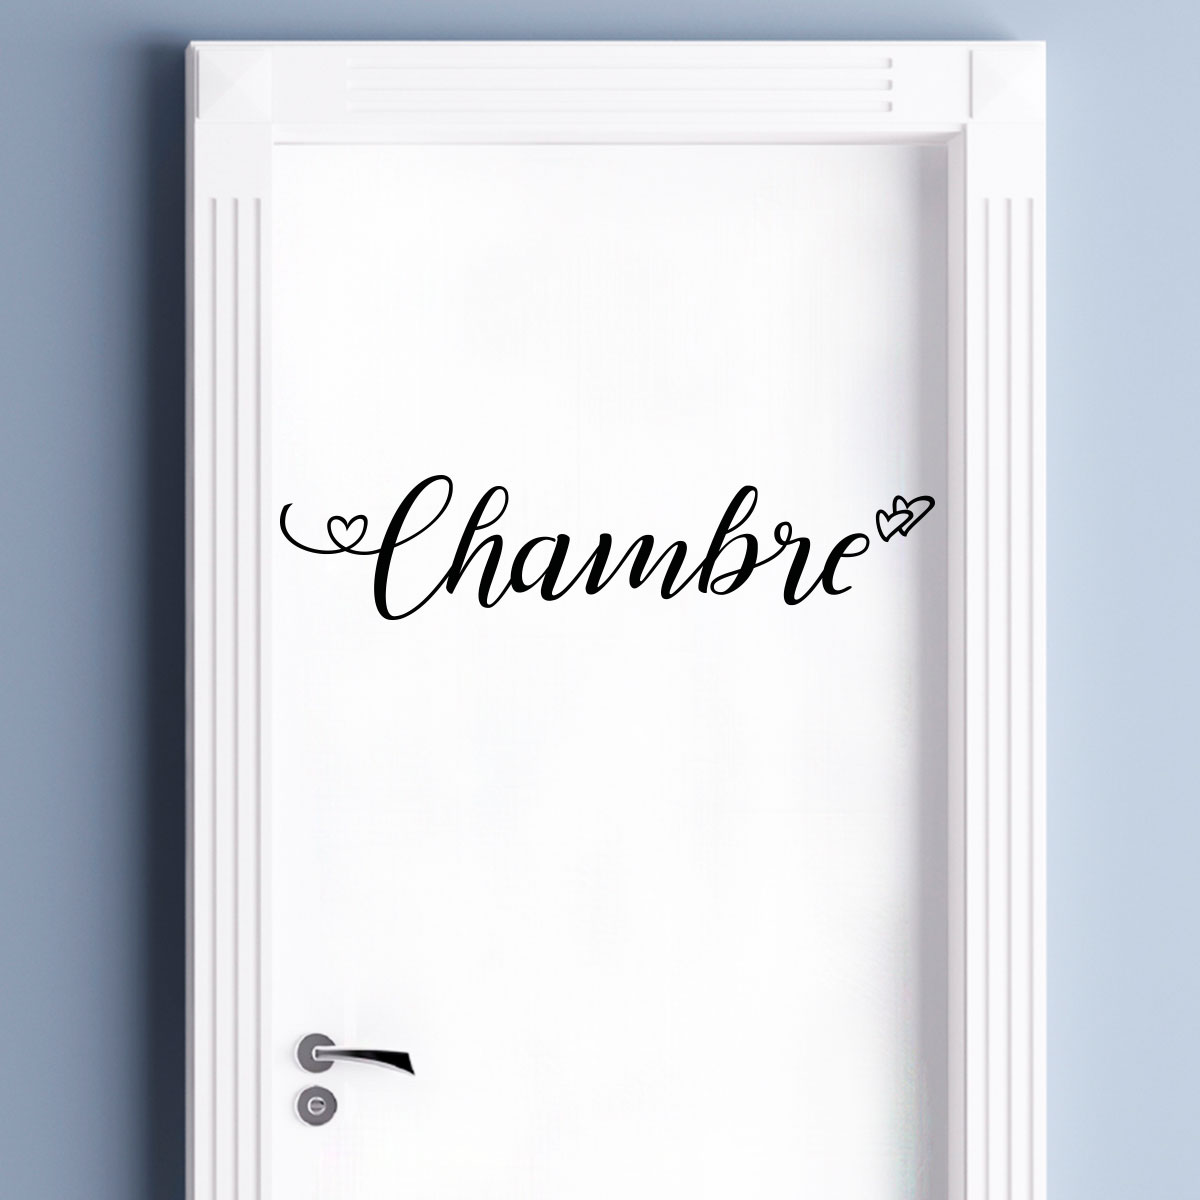 Porte Chambre Https Ambiance Sticker Sticker Porte Citation Interdit De